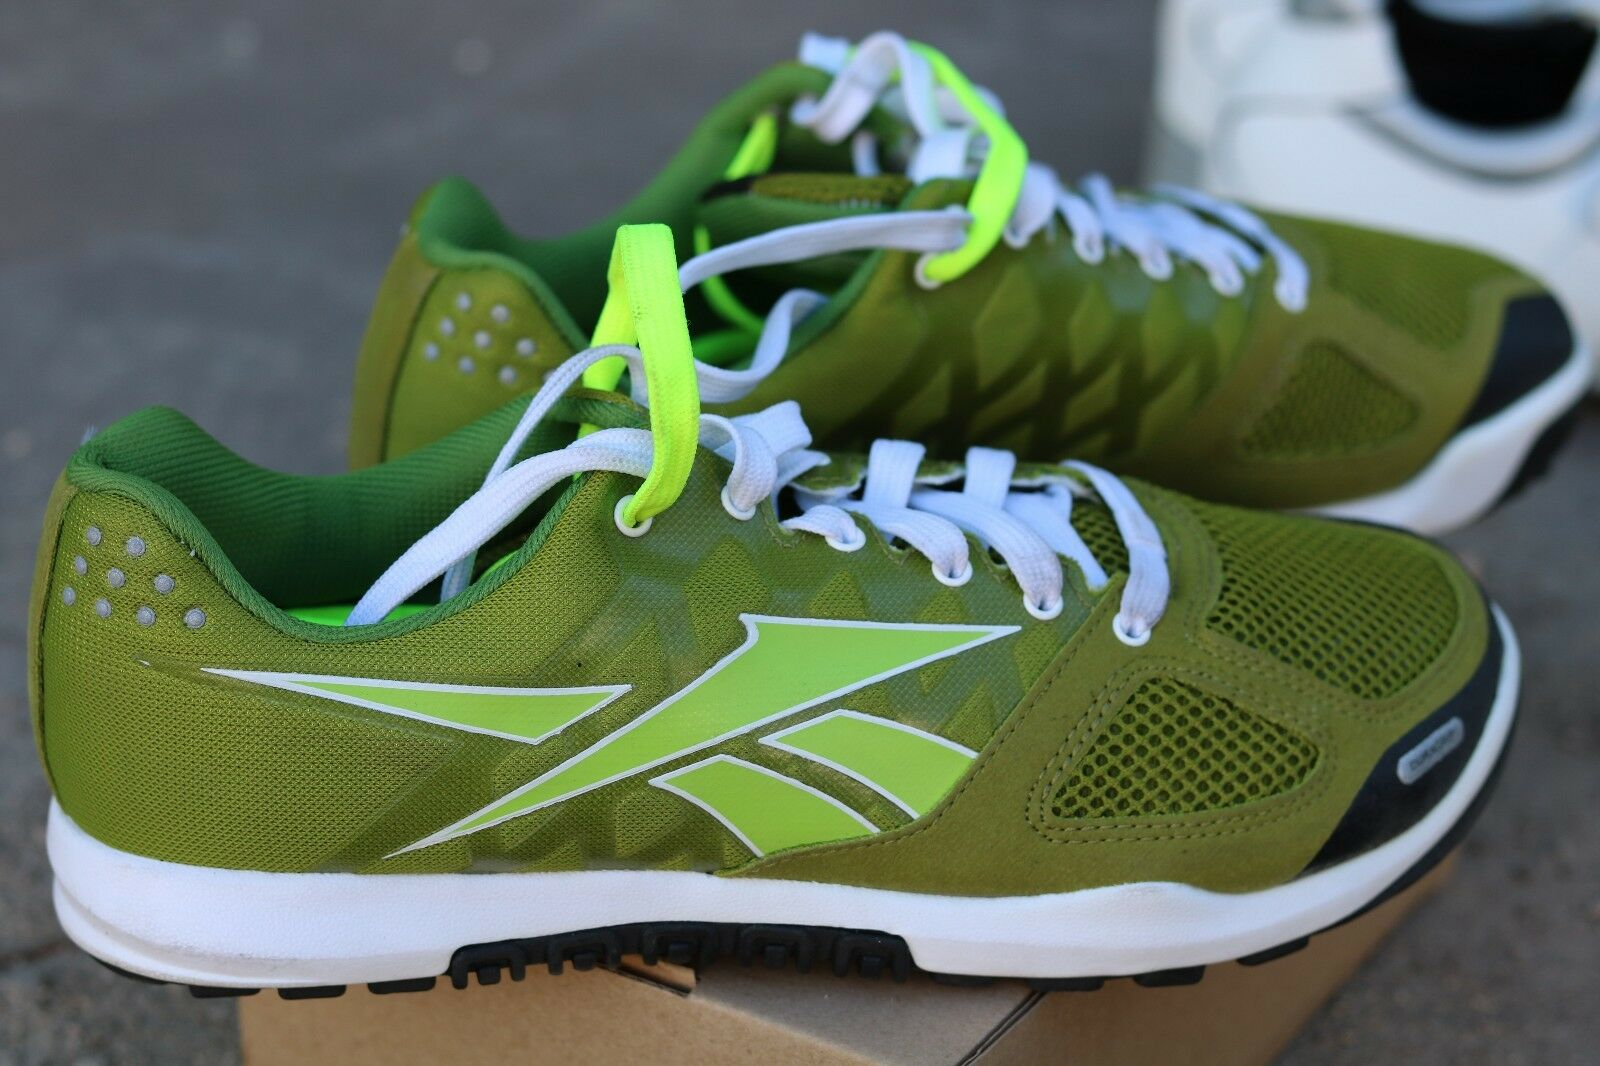 Reebok Nano Crossfit Powerlifting Running Sneakers  Limegreen White 7.5US  hot limited edition